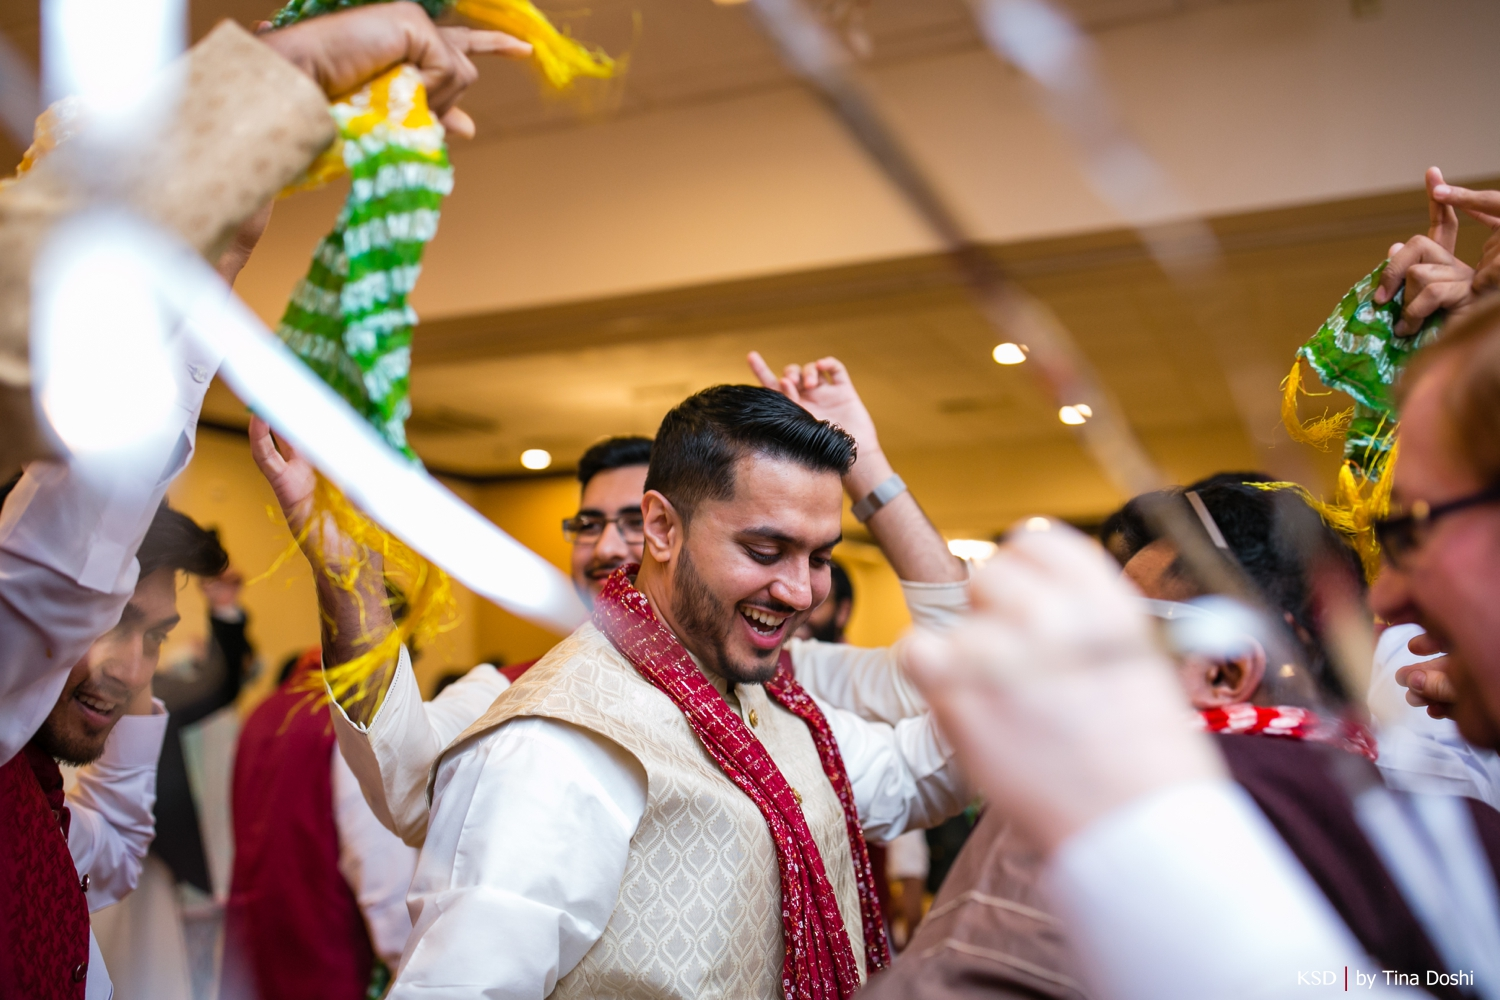 nj_south_asian_wedding_0054